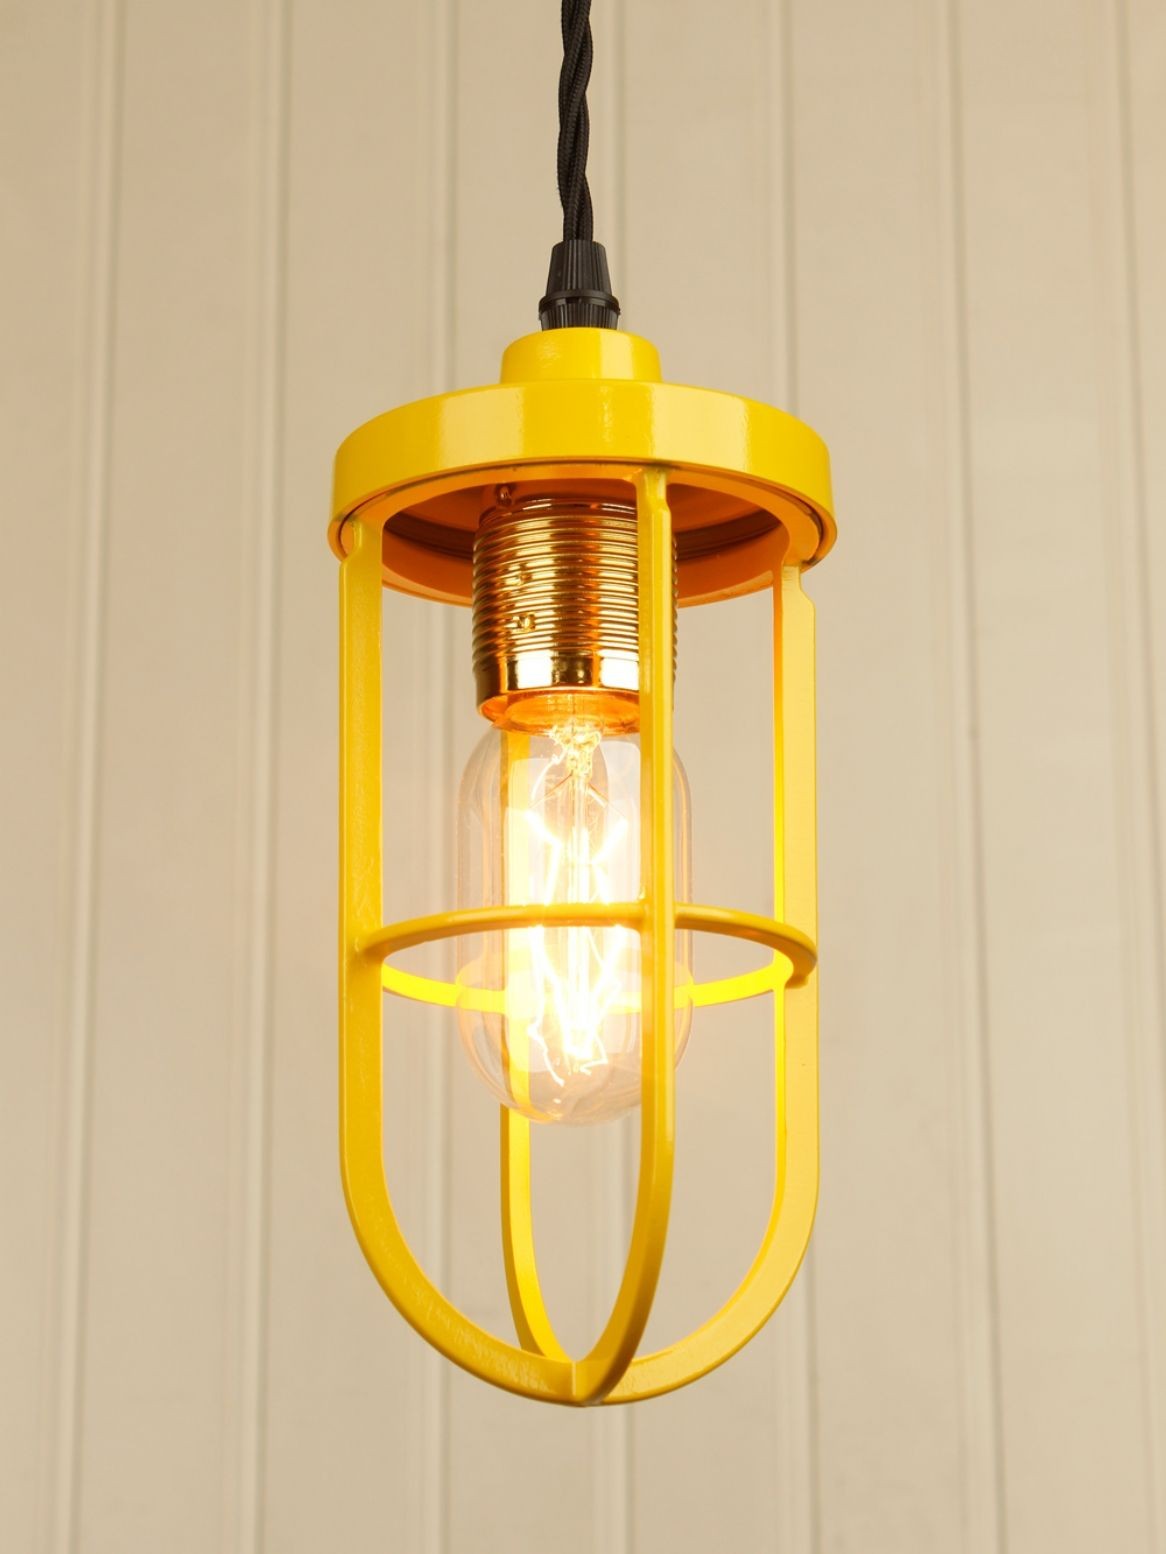 Industrial style ceiling pendant light with a yellow cage shade and